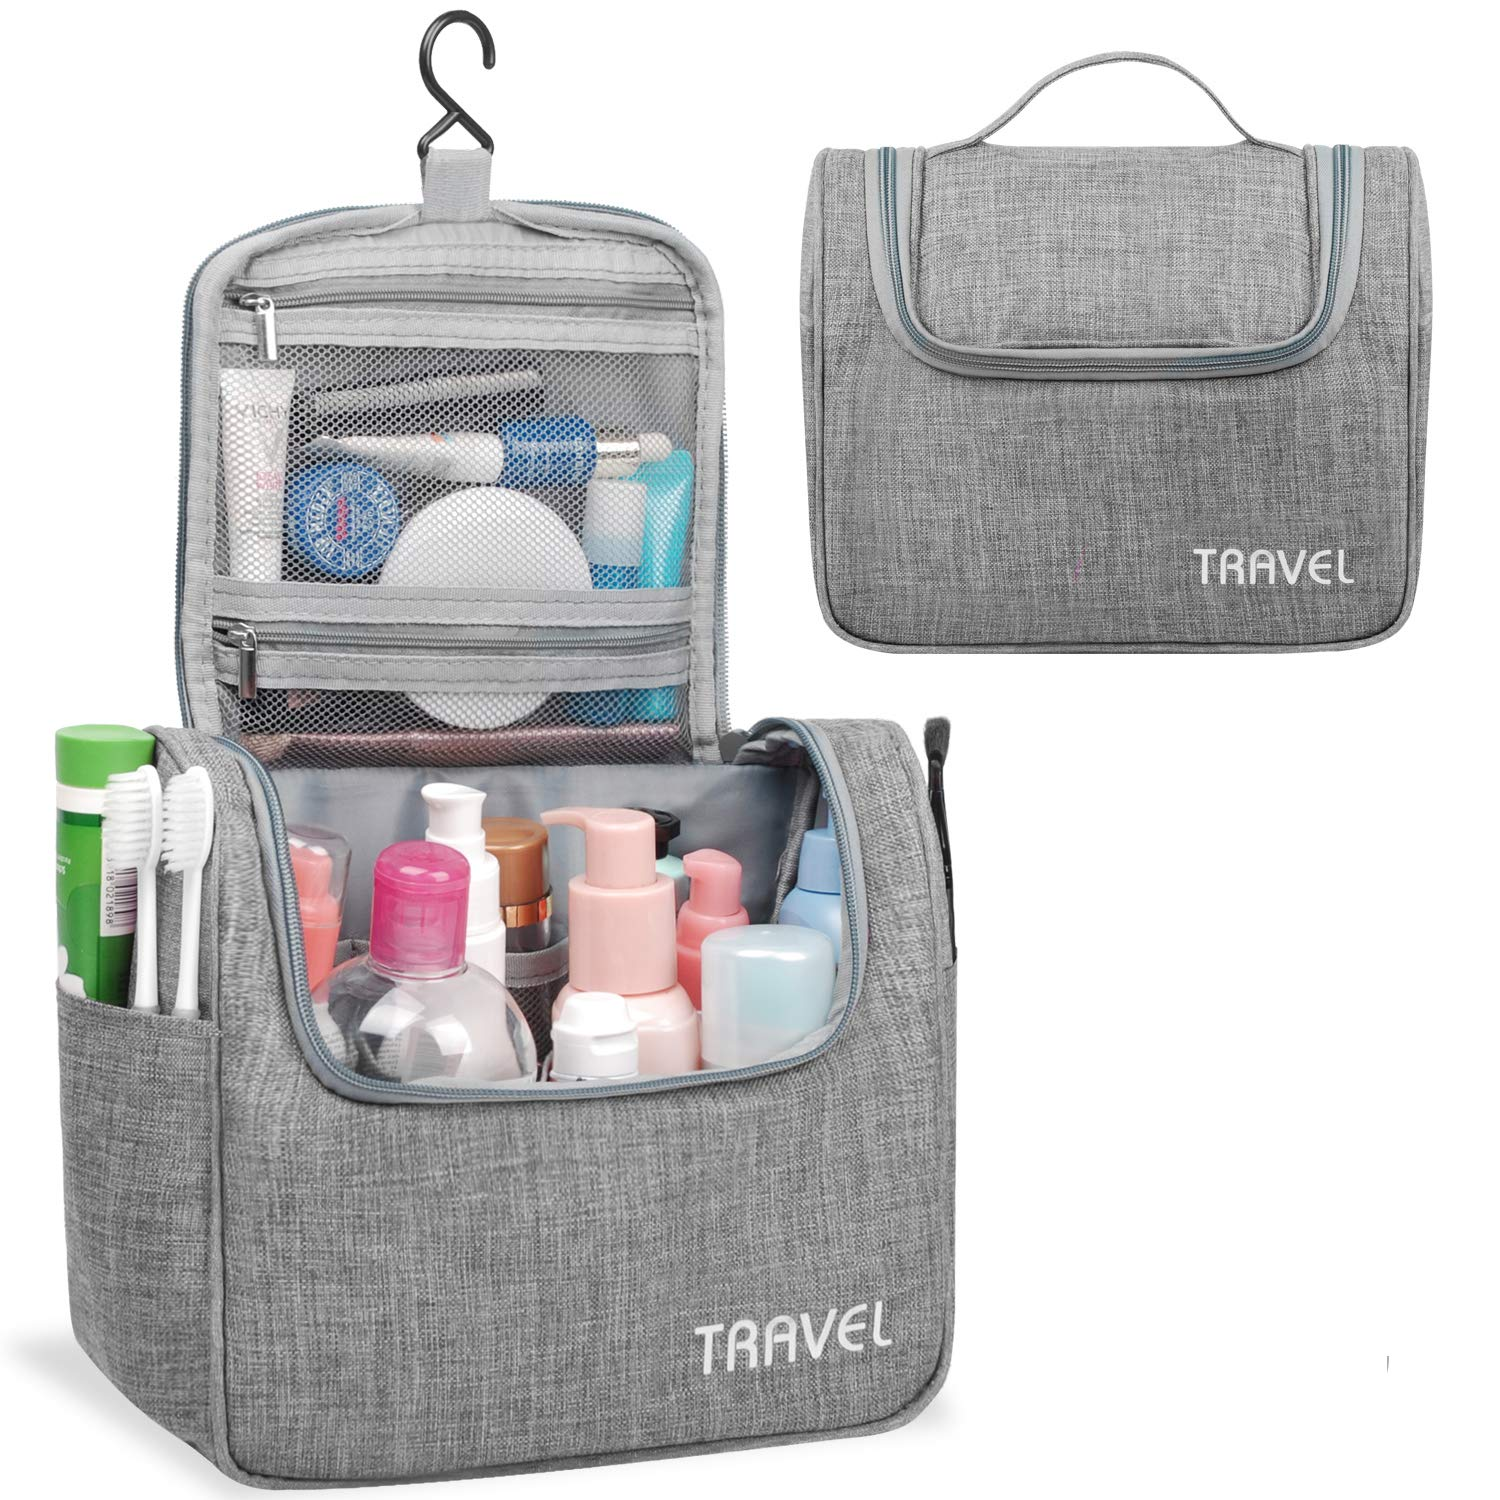 Hanging Toiletry Bag Travel Cosmetic Organizer Shower Bathroom Bag for Men Women Water-resistant Light Grey